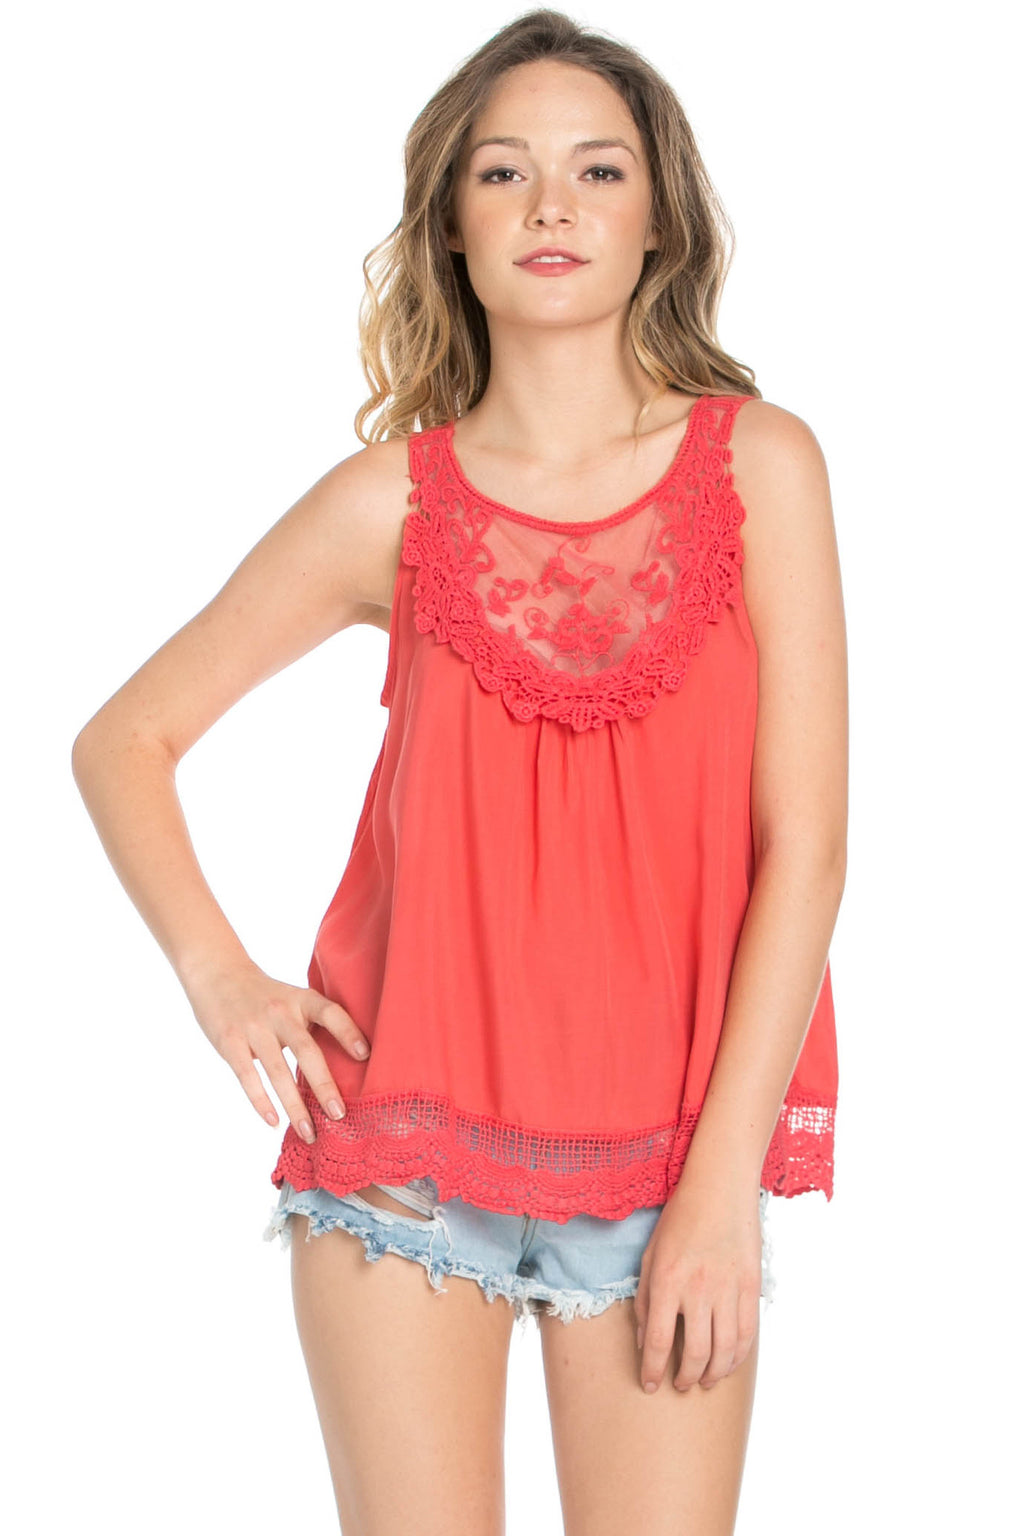 64c248e5342 Crochets and Lace Coral Top - Tops - My Yuccie - 2